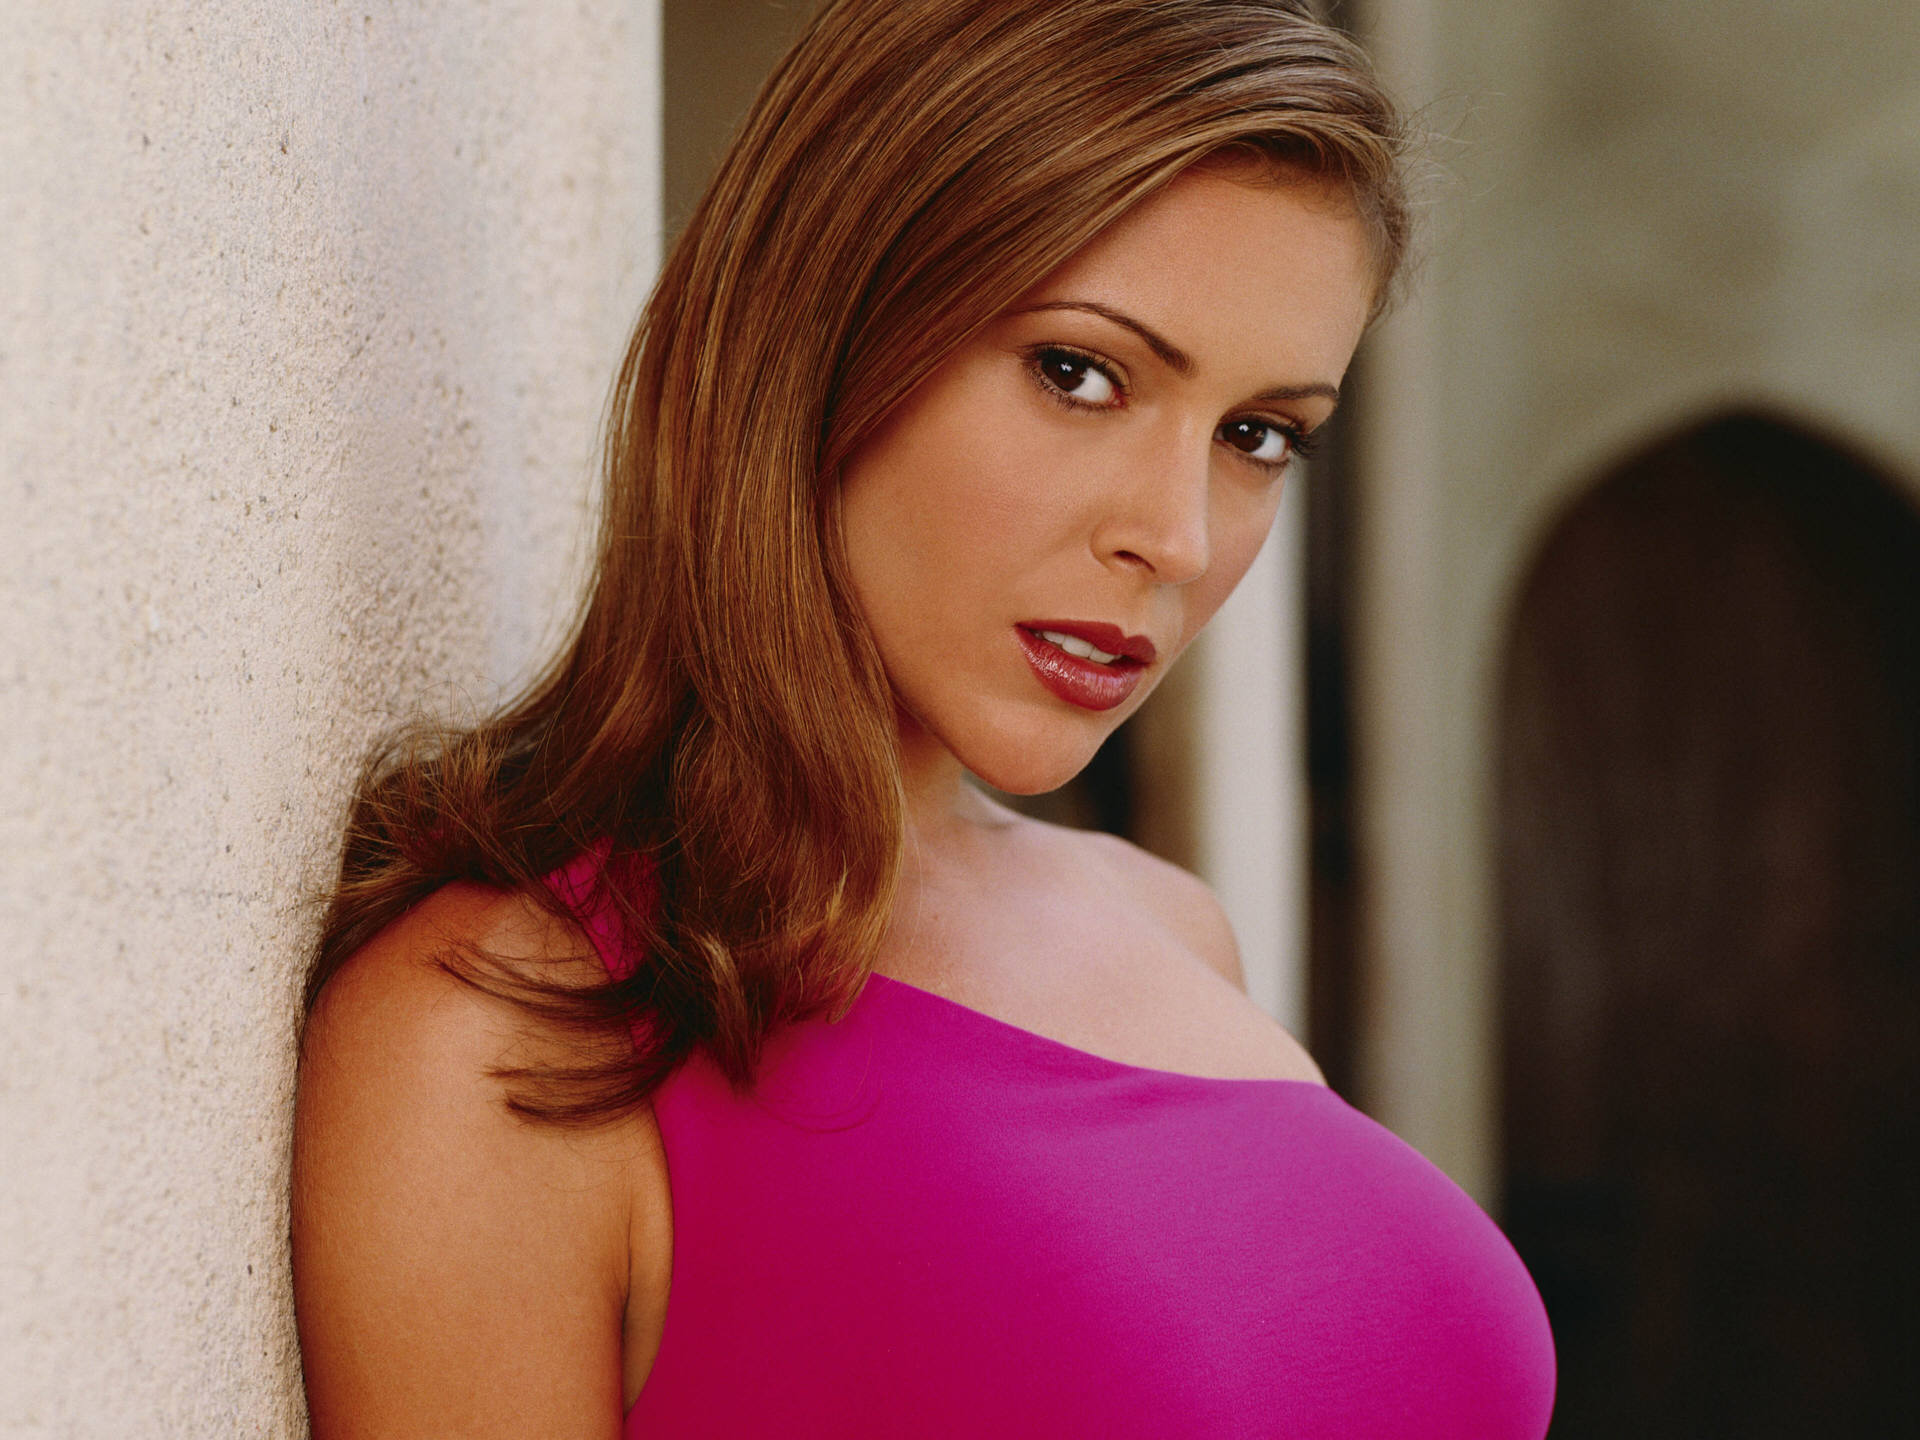 Cute Pink Wallpaper 1980 17 Hd Alyssa Milano Wallpapers